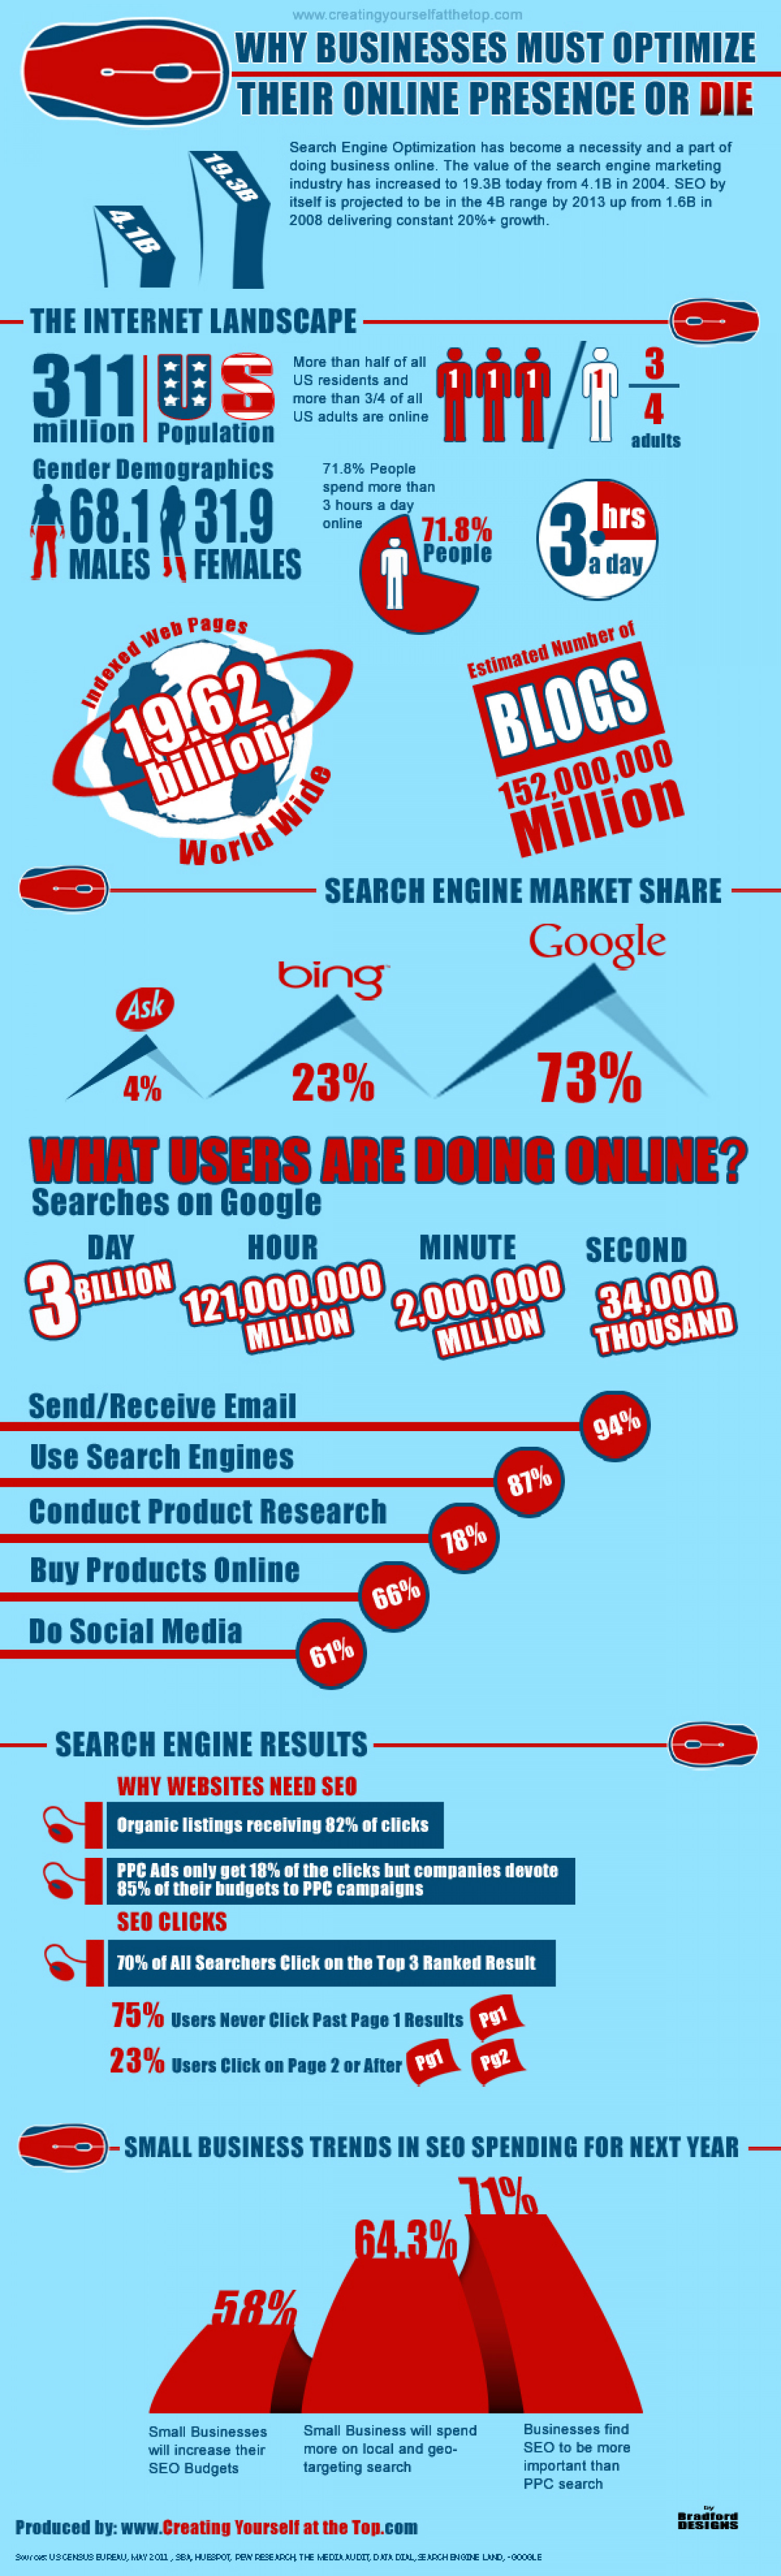 Why Businesses Must Optimize Their Online Presence  Infographic